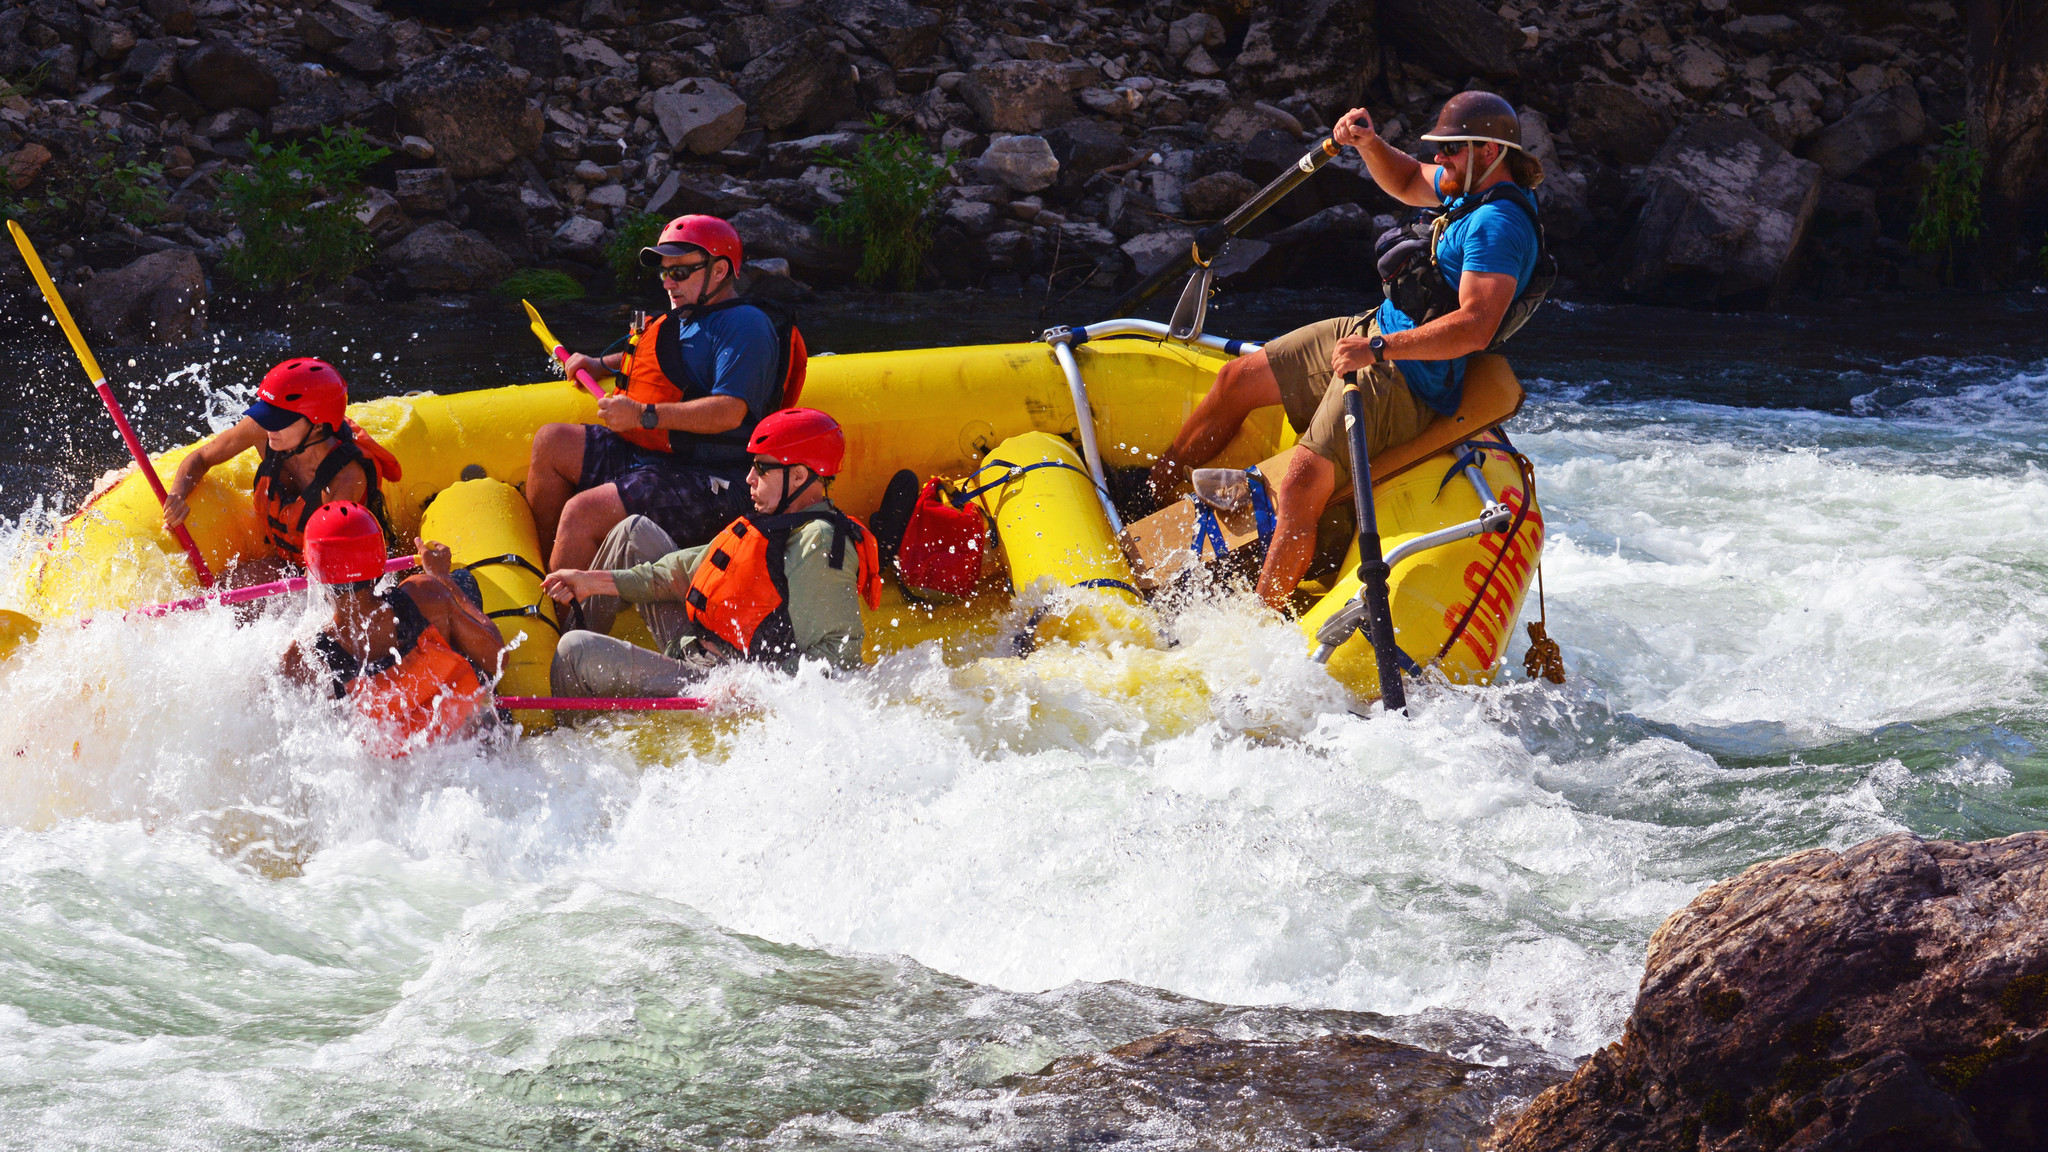 On a three-day rafting trip down the Tuolumne River near Yosemite National Park last summer, OARS gu